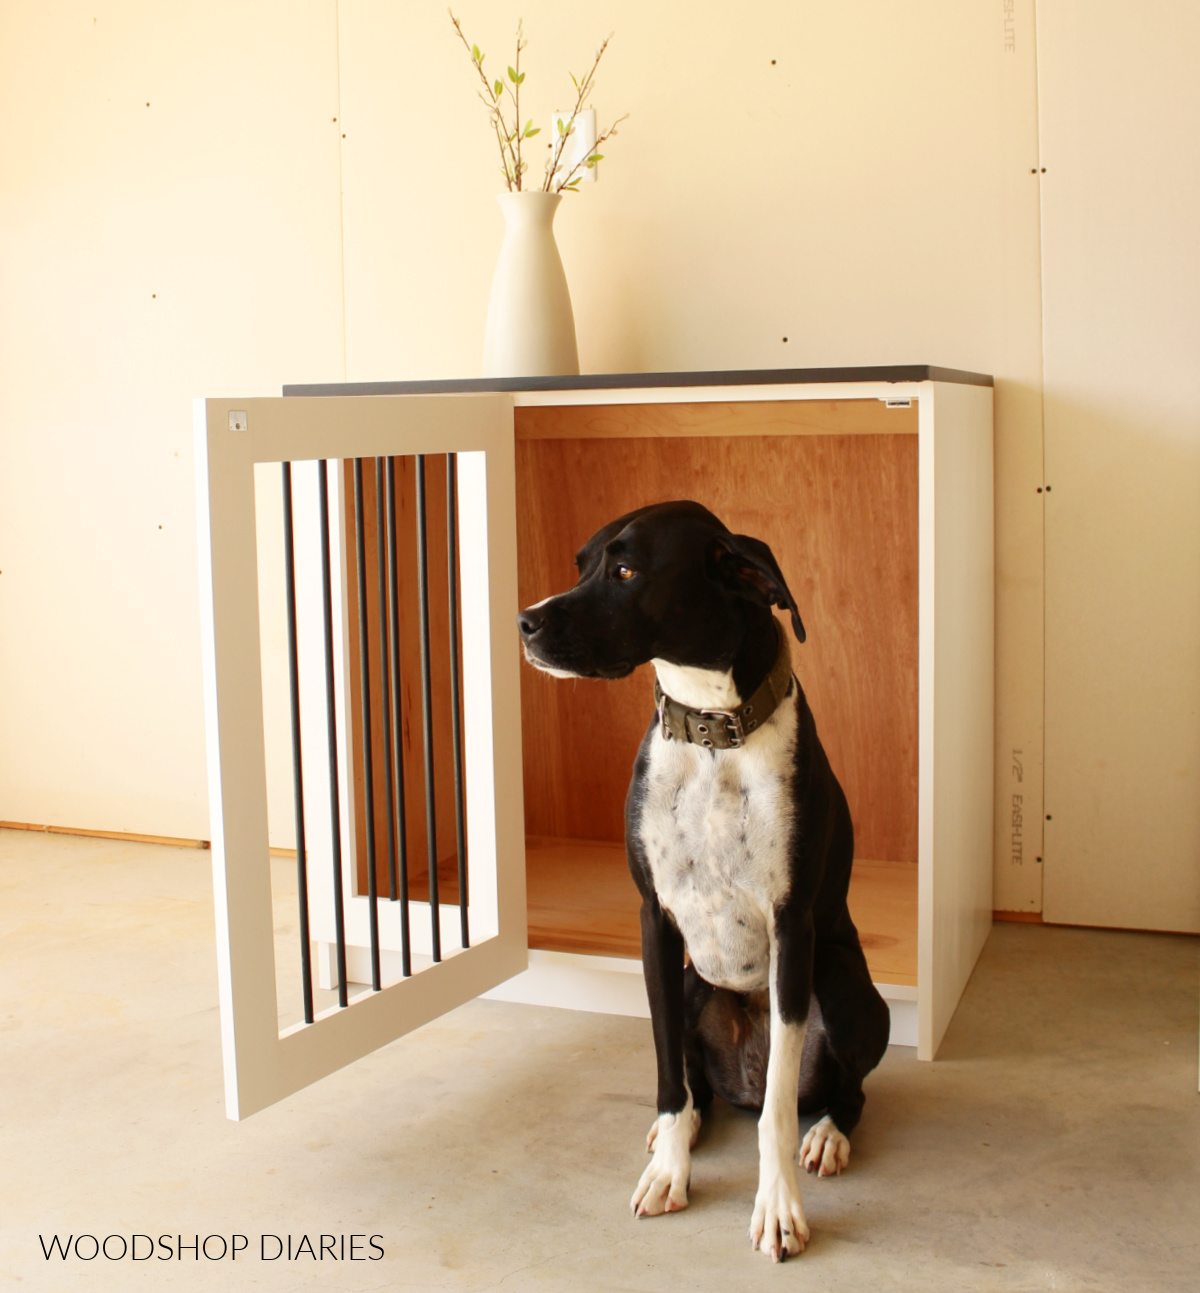 Black and white dog in front of black and white wooden dog crate with door open